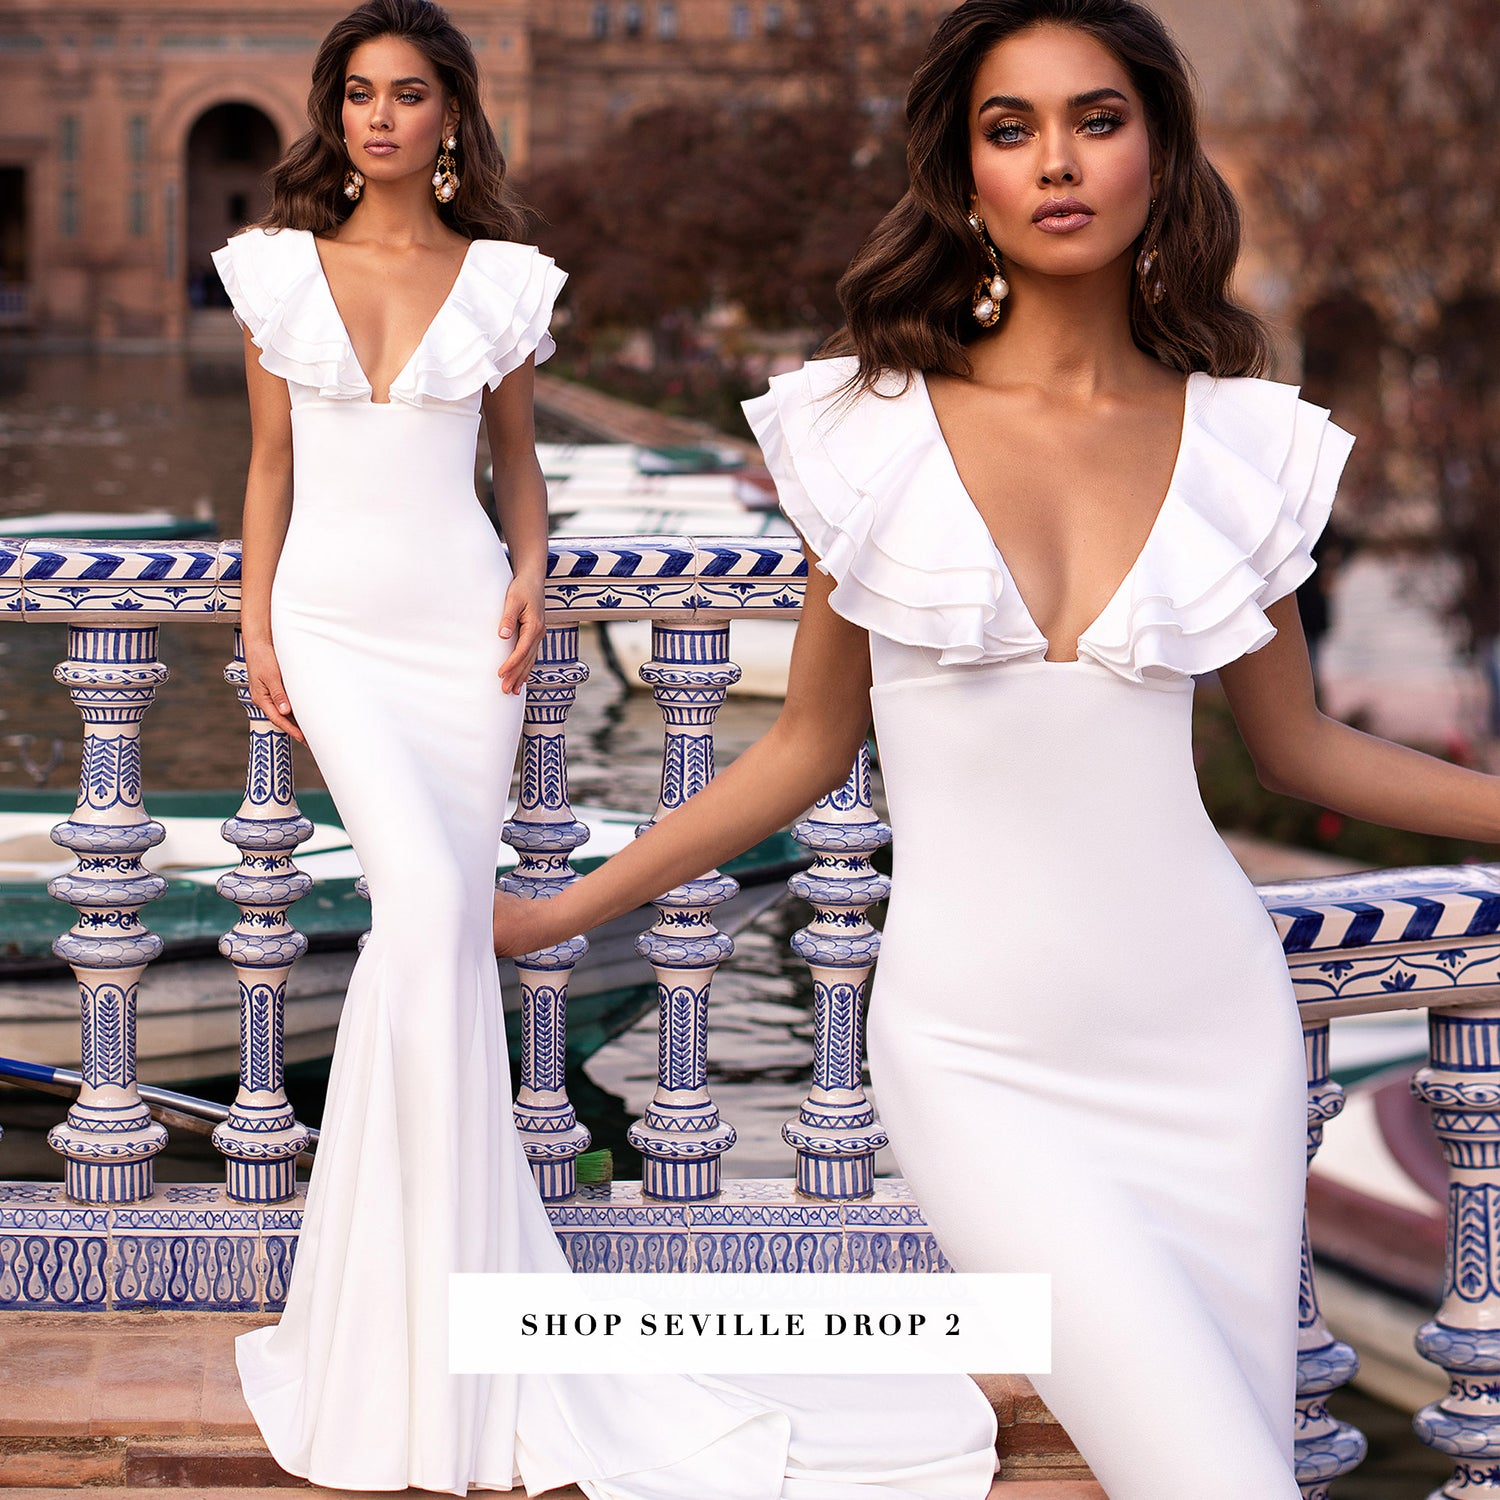 52a5787b0fd25 Designer Formal Dresses | Afterpay | Zip | Sezzle | We Ship Worldwide